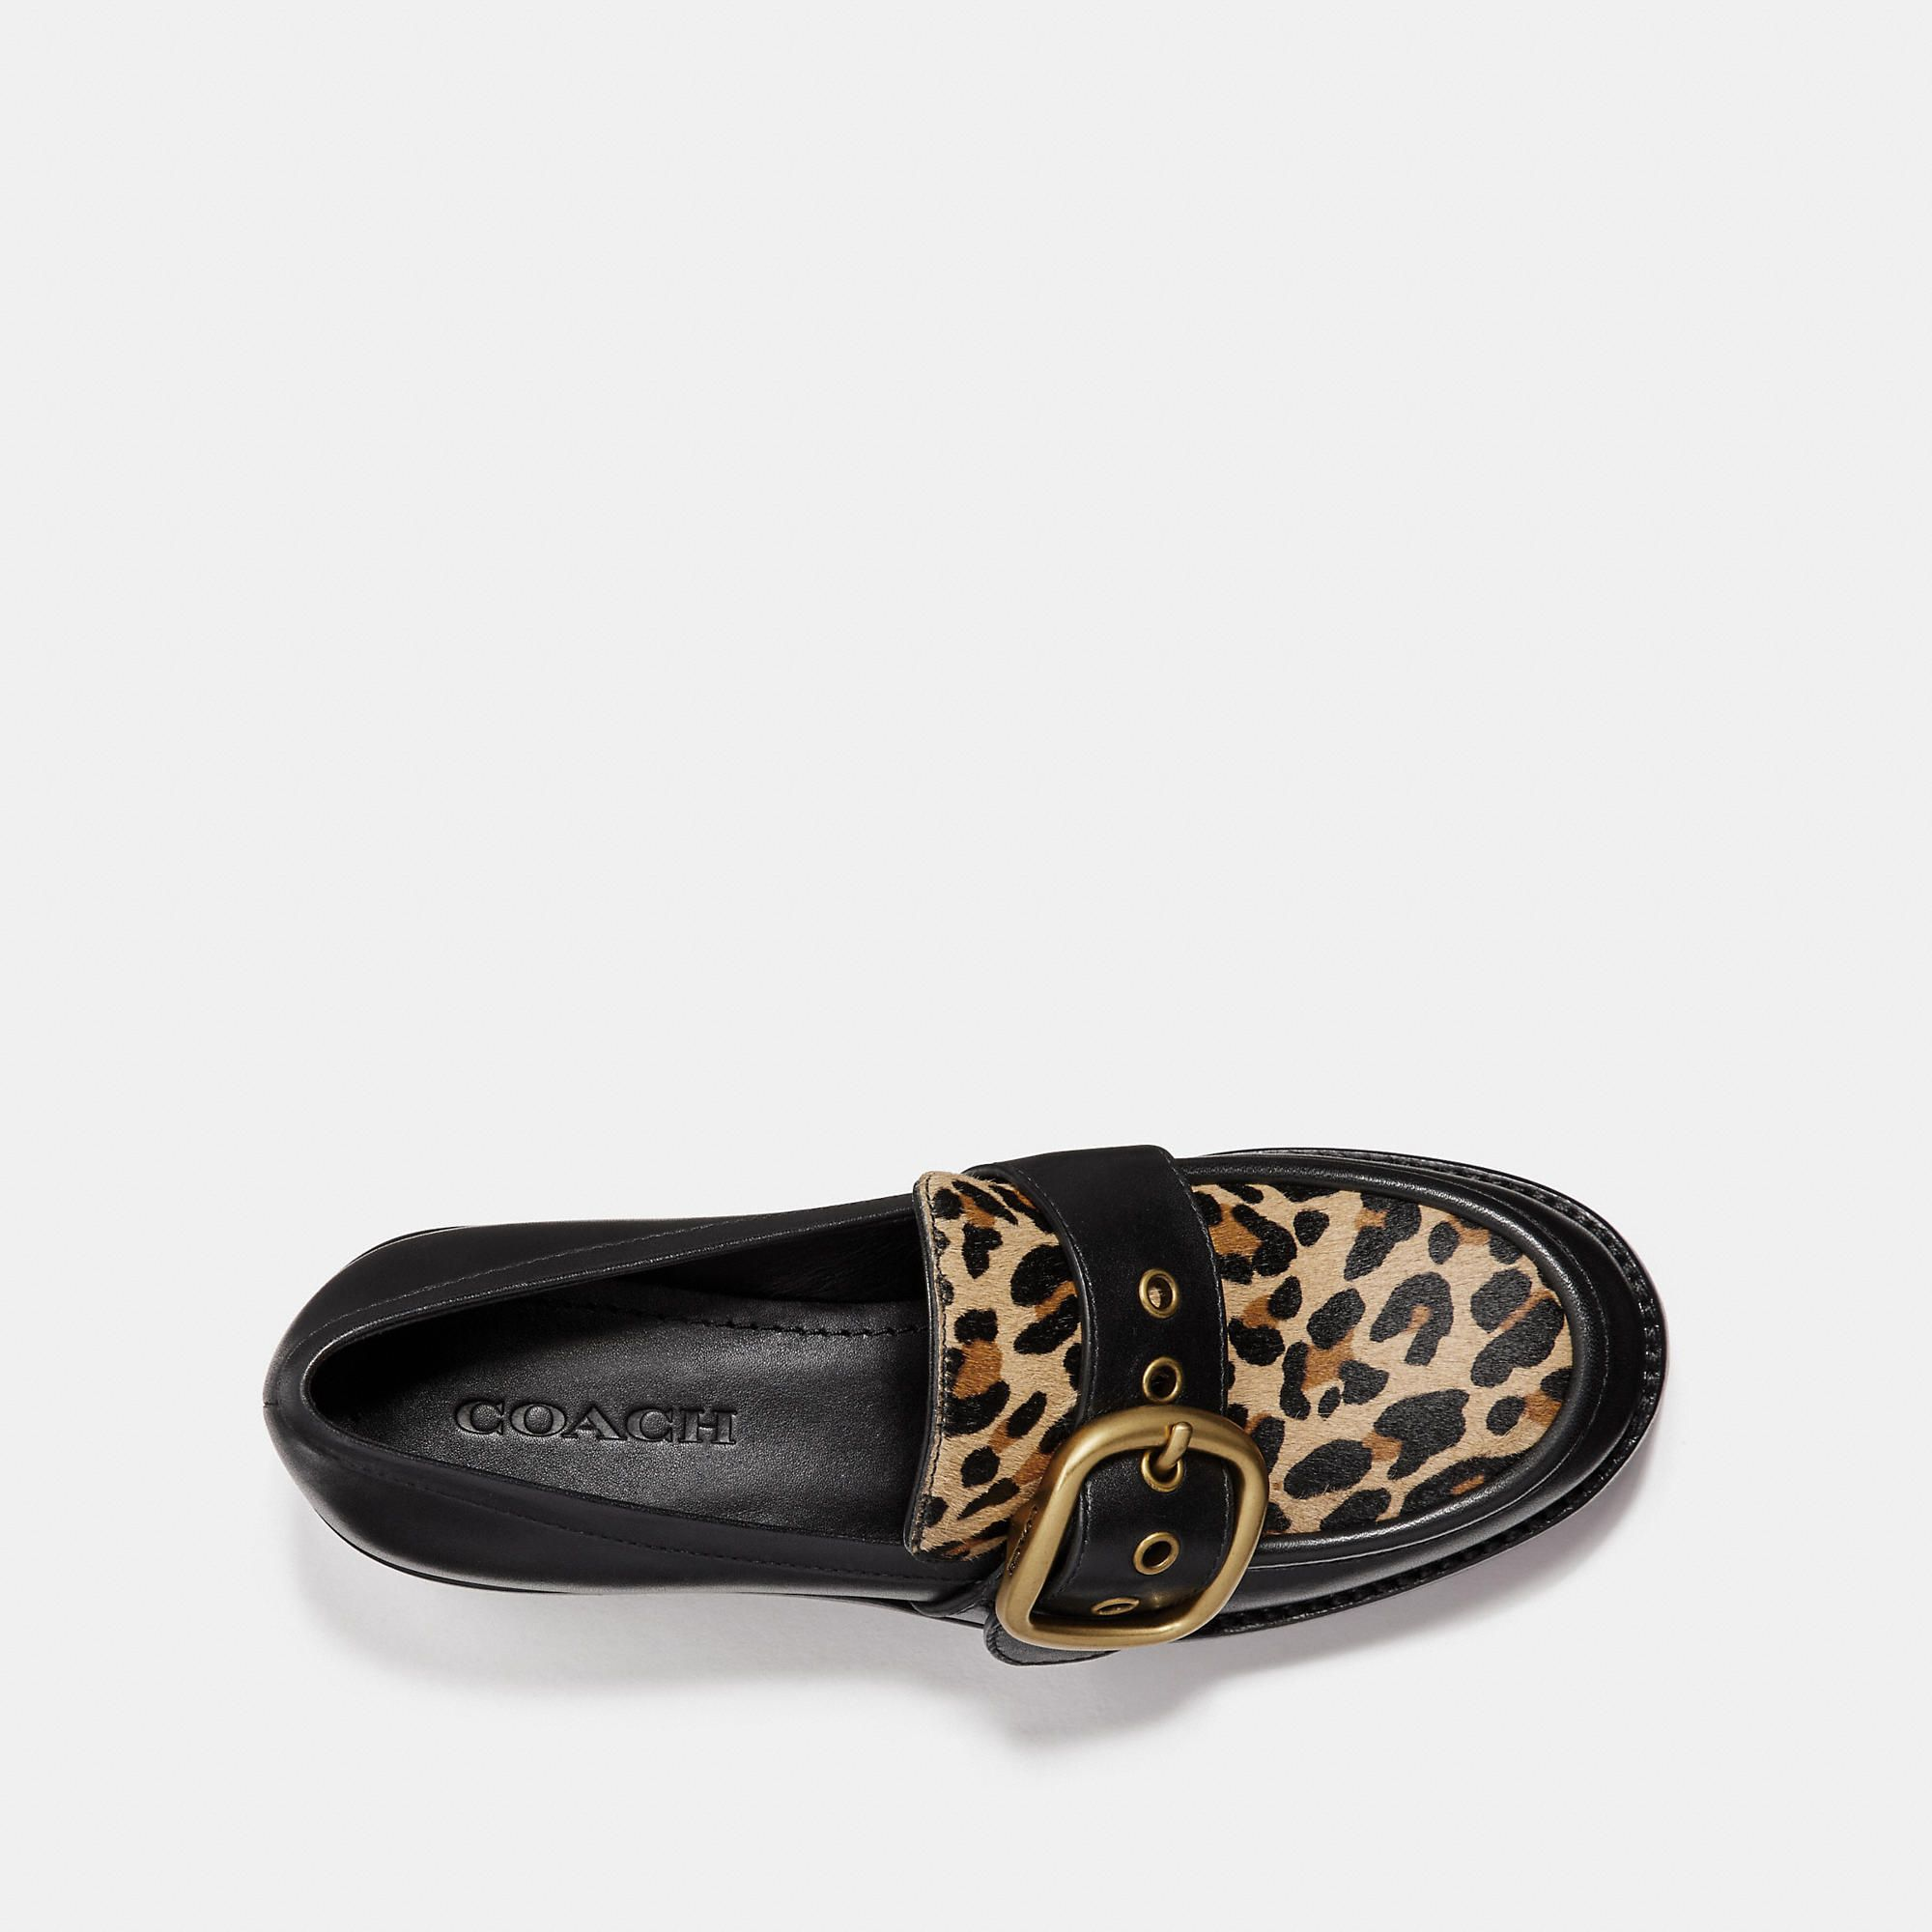 c8191add5a9 COACH Grand Loafer With Leopard Print - Women s Size 7.5 Loafers ...